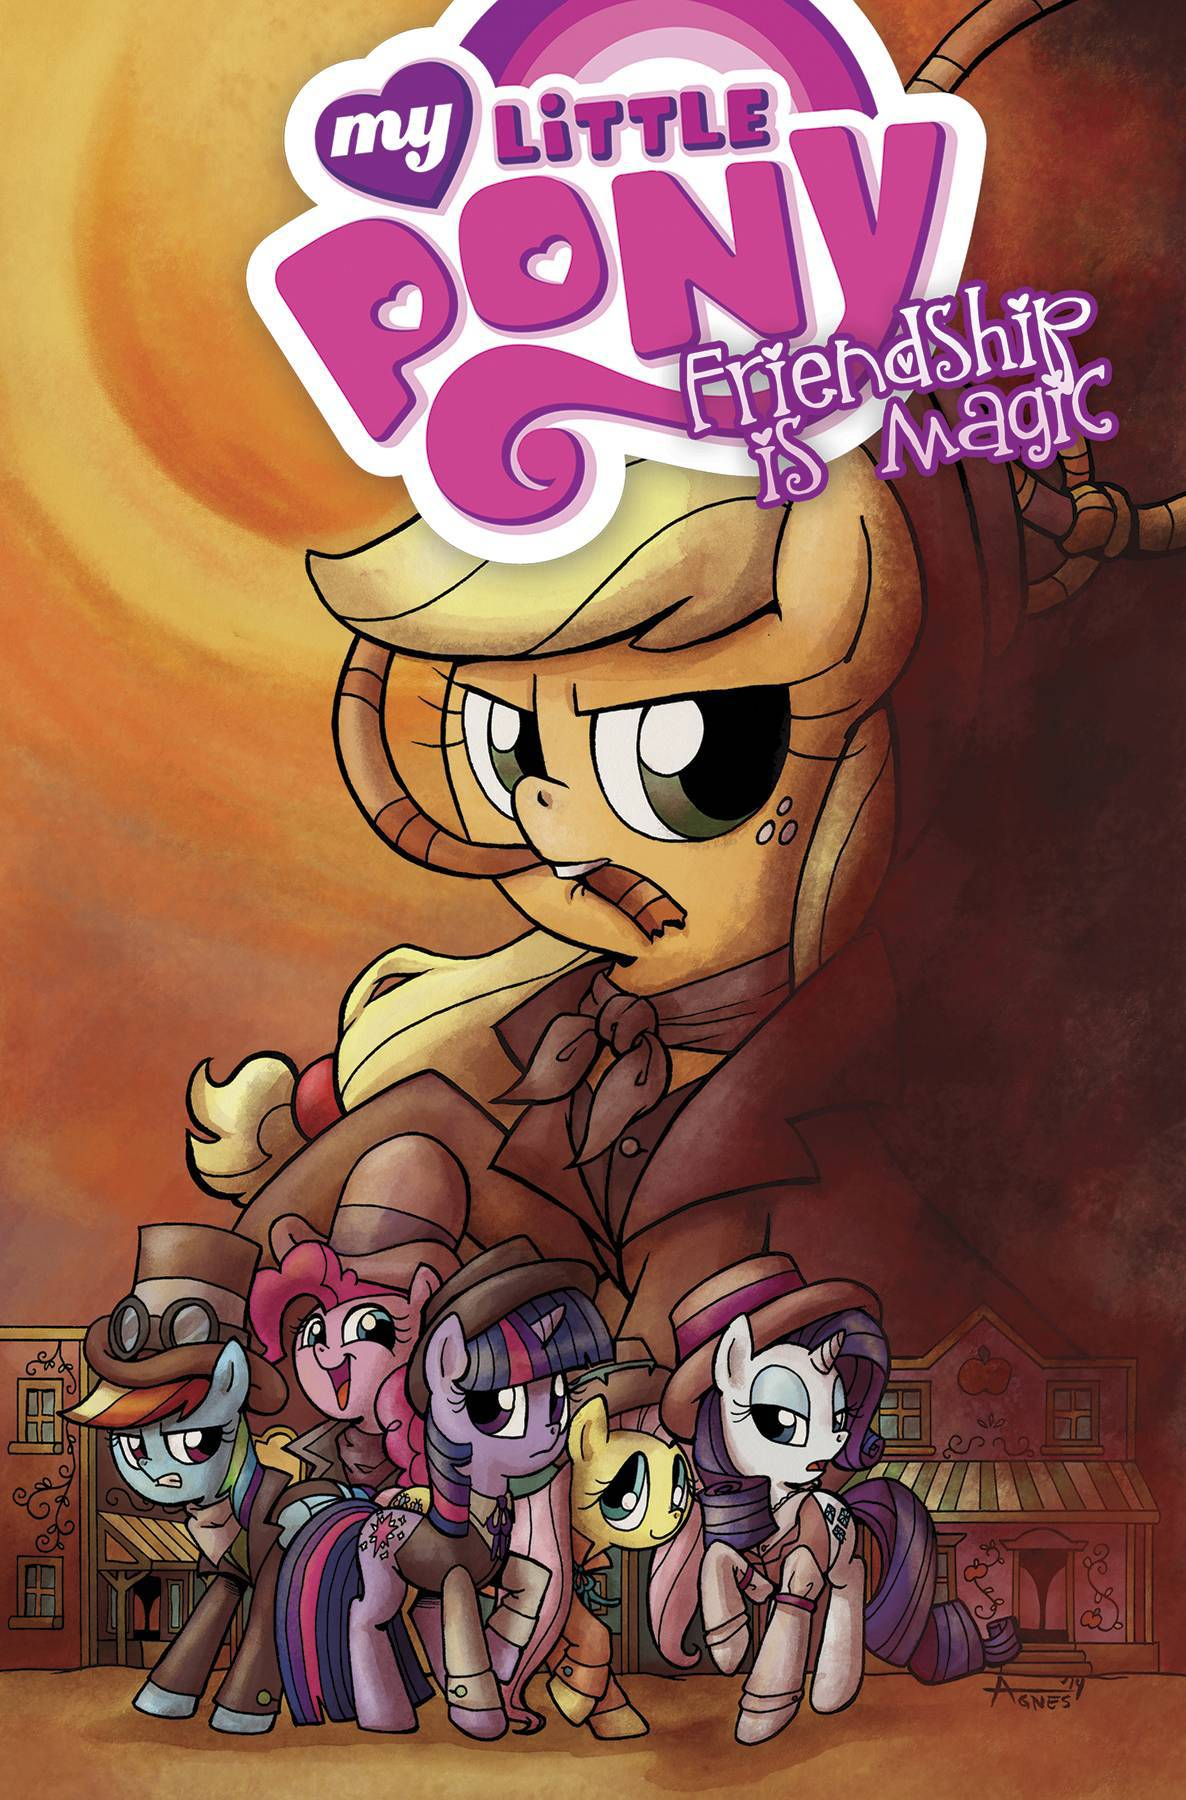 MY LITTLE PONY: FRIENDSHIP IS MAGIC VOL 07